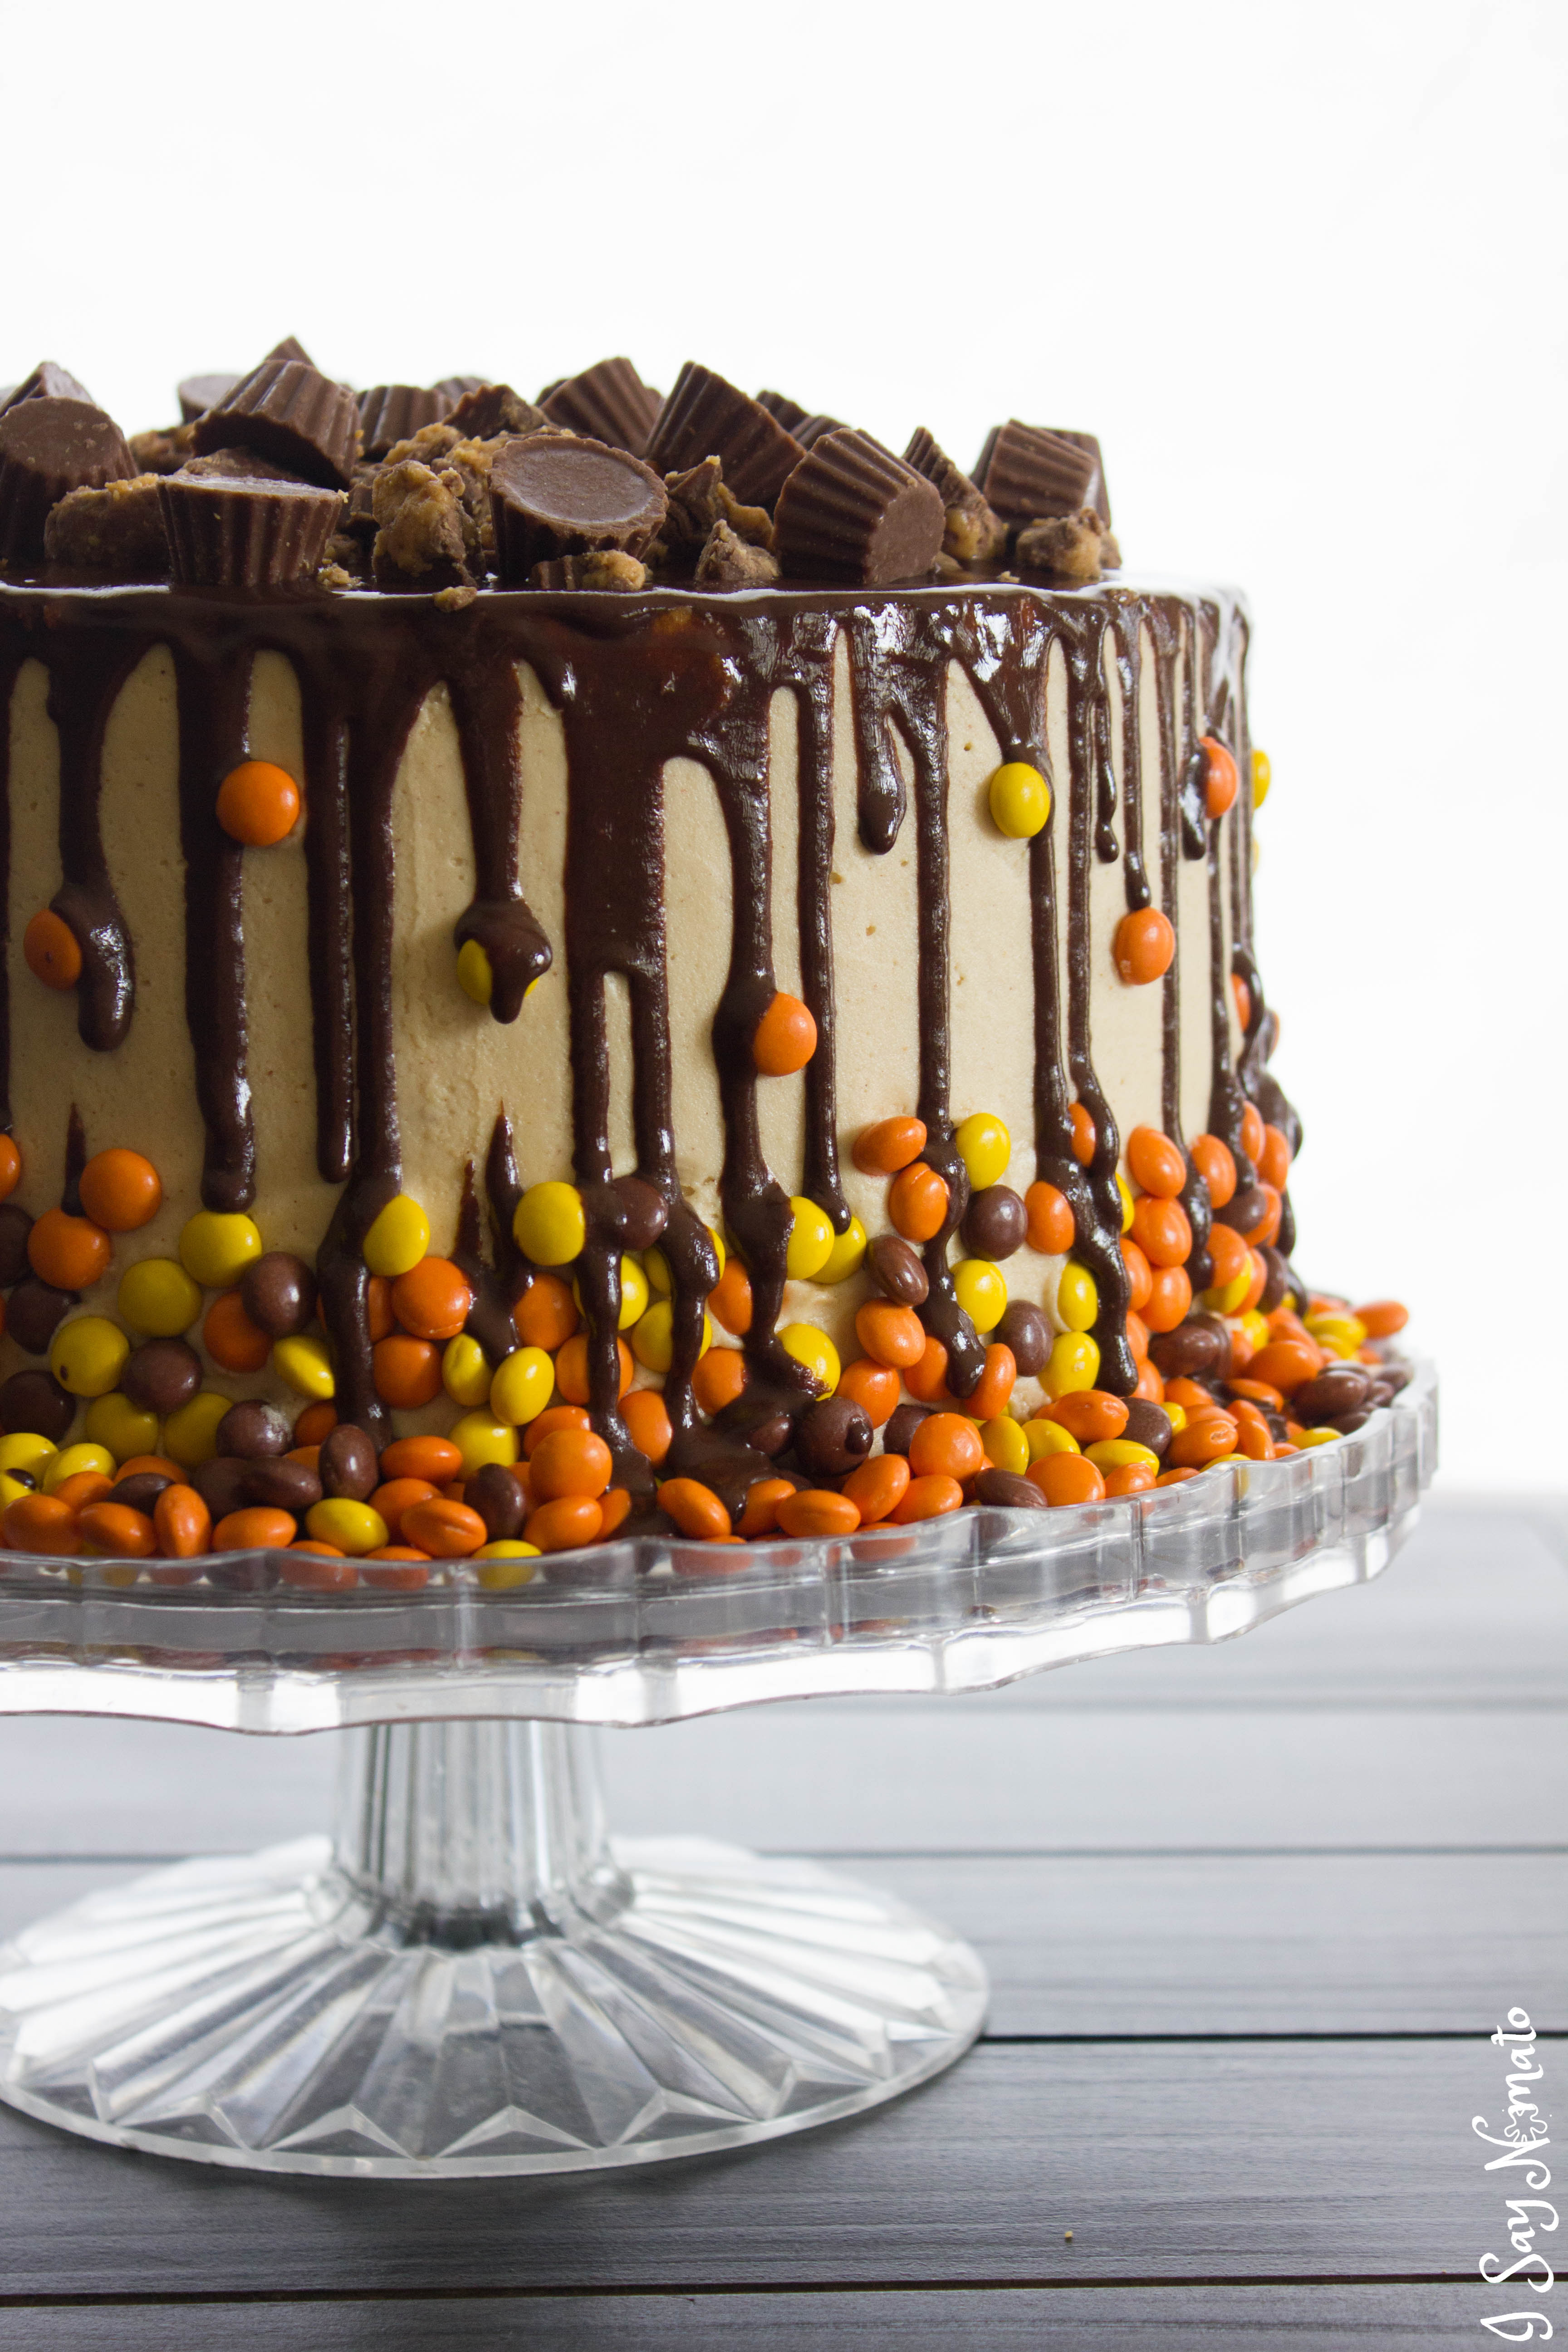 Chocolate and Peanut Butter Drip Cake | I Say Nomato